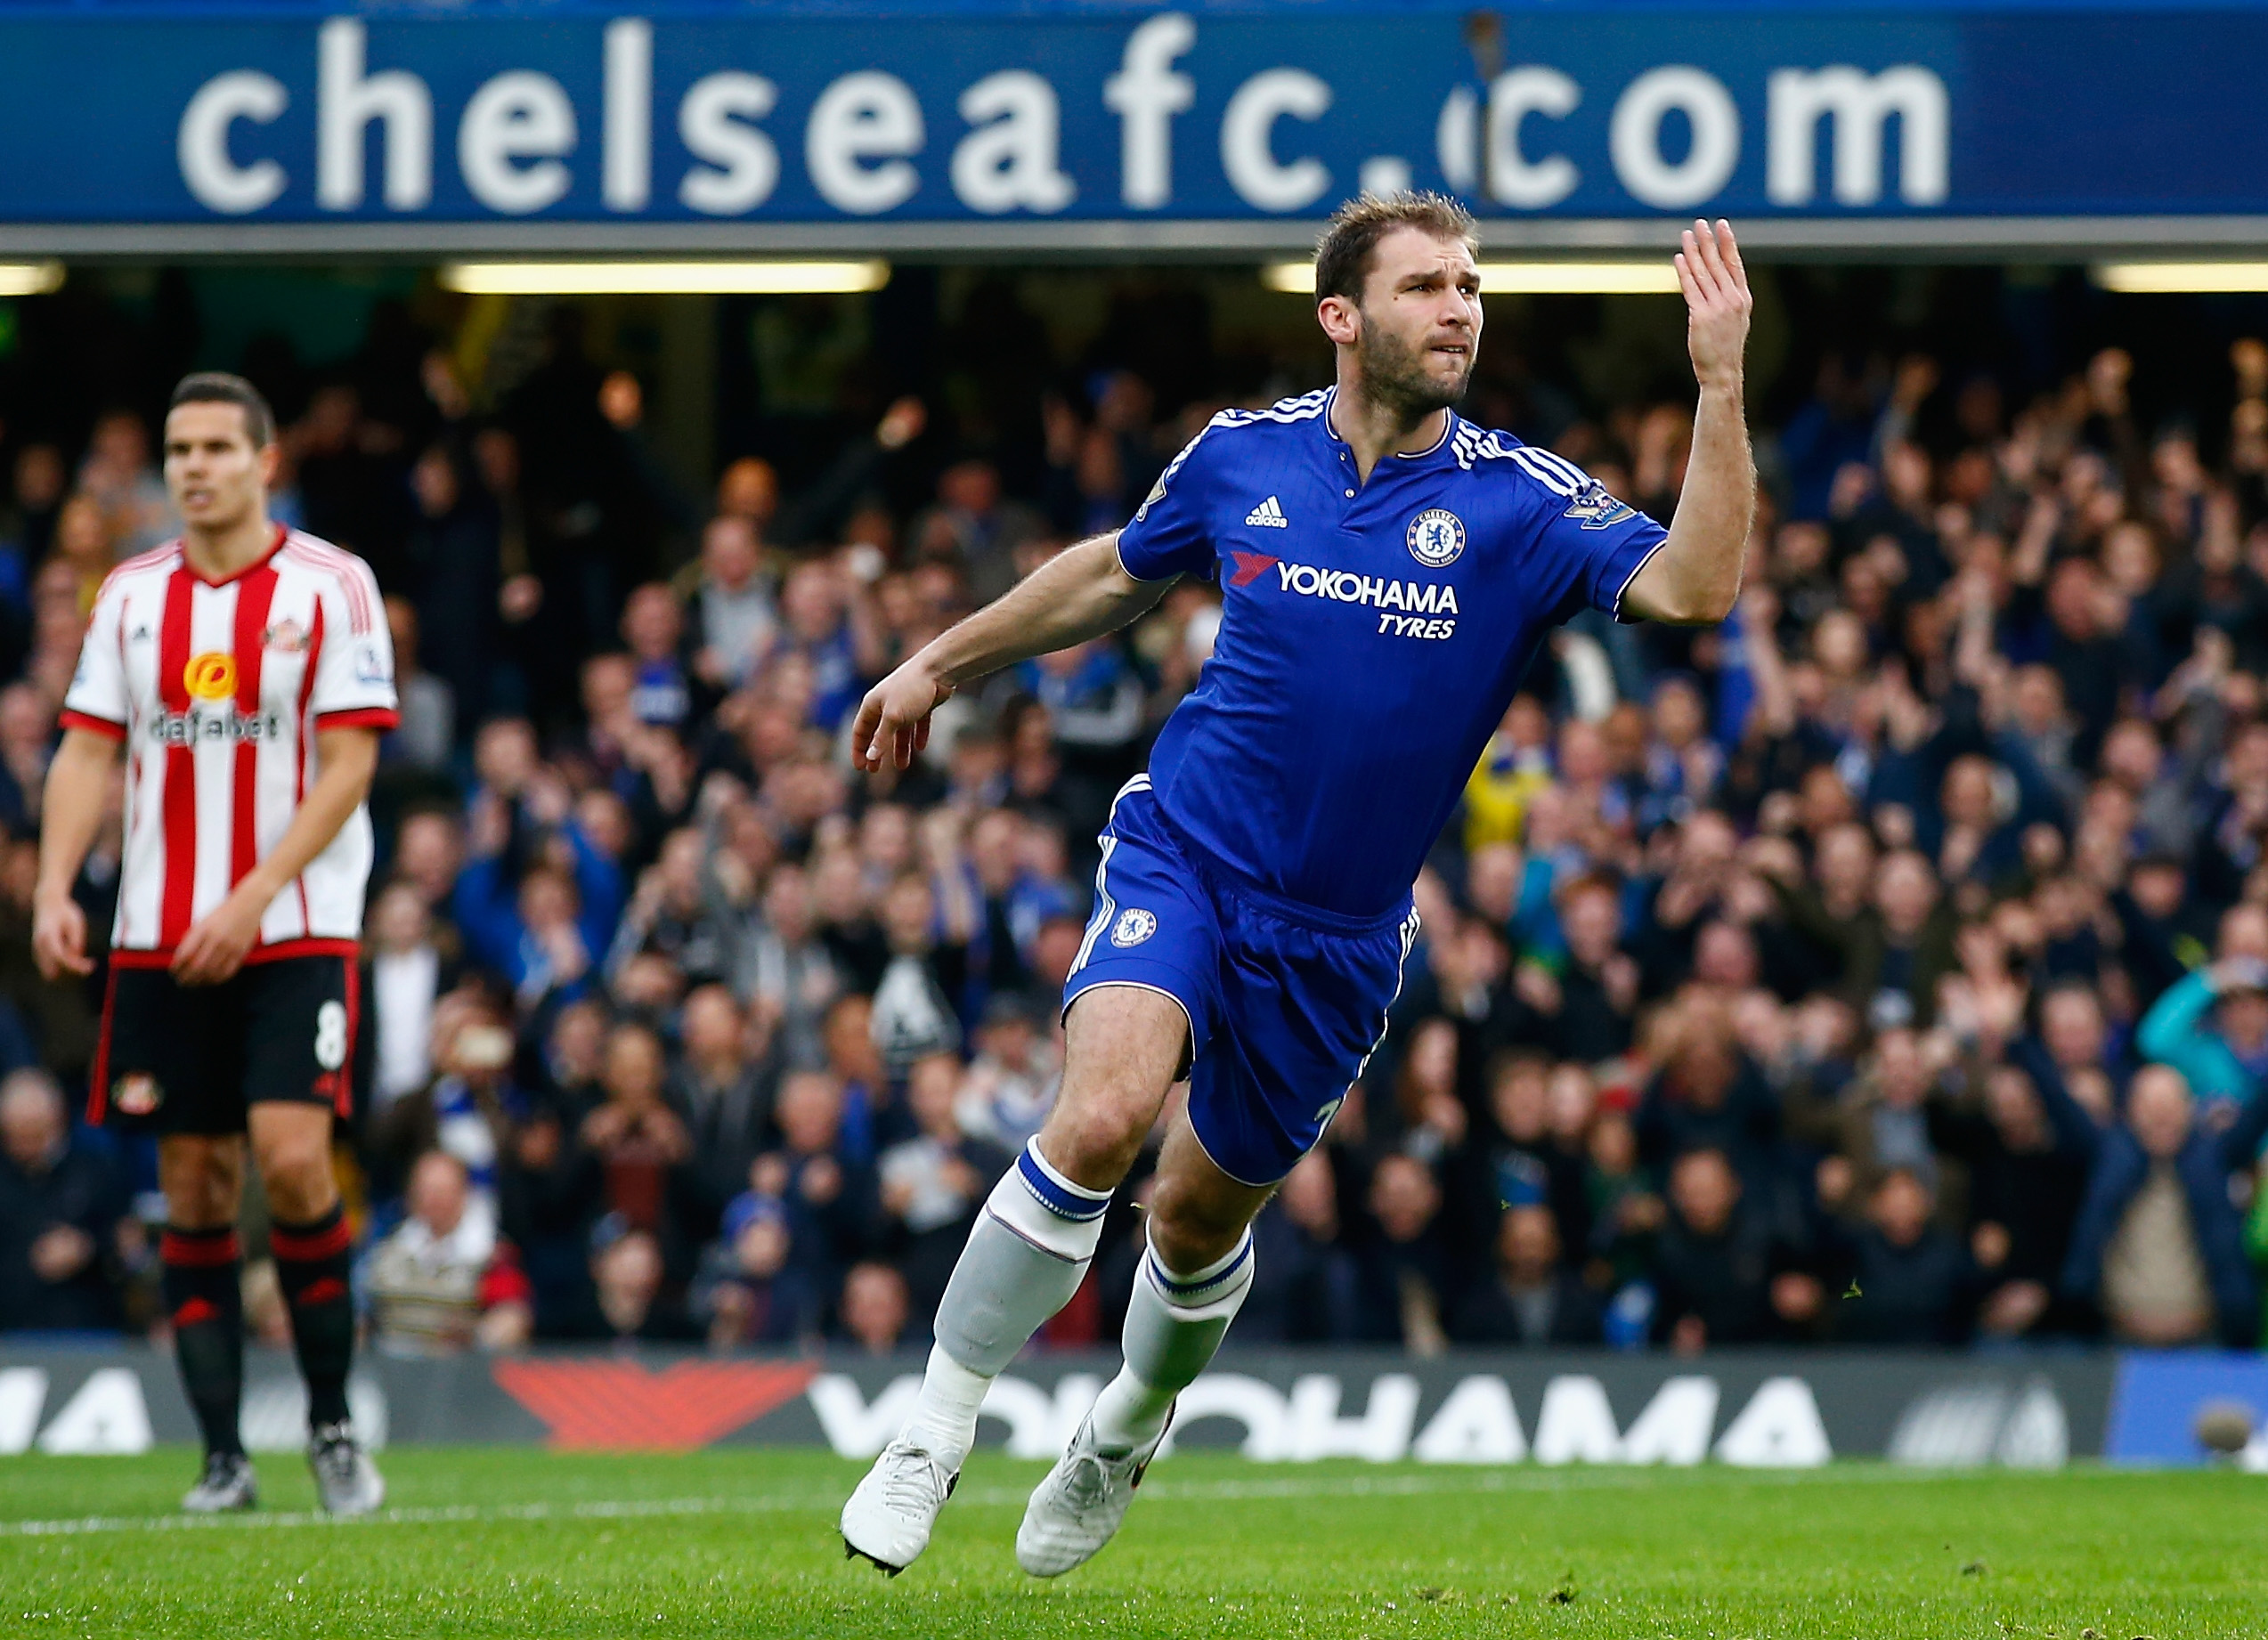 Ivanovic got a goal and an assist last week, the first time he'd registered either this season. Is he back to being a fantasy stud?